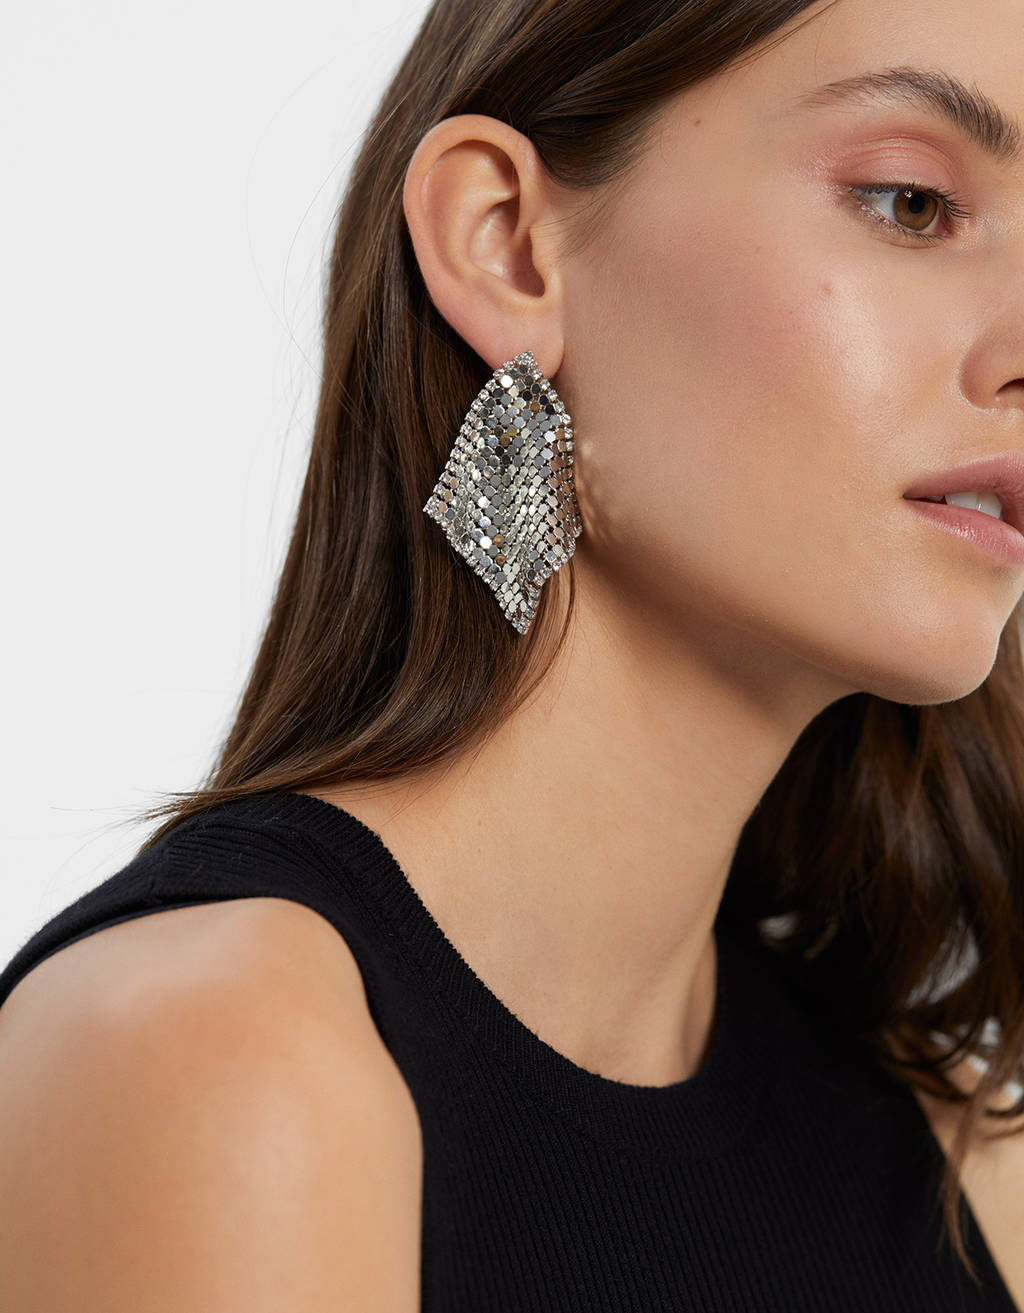 Shiny mesh earrings